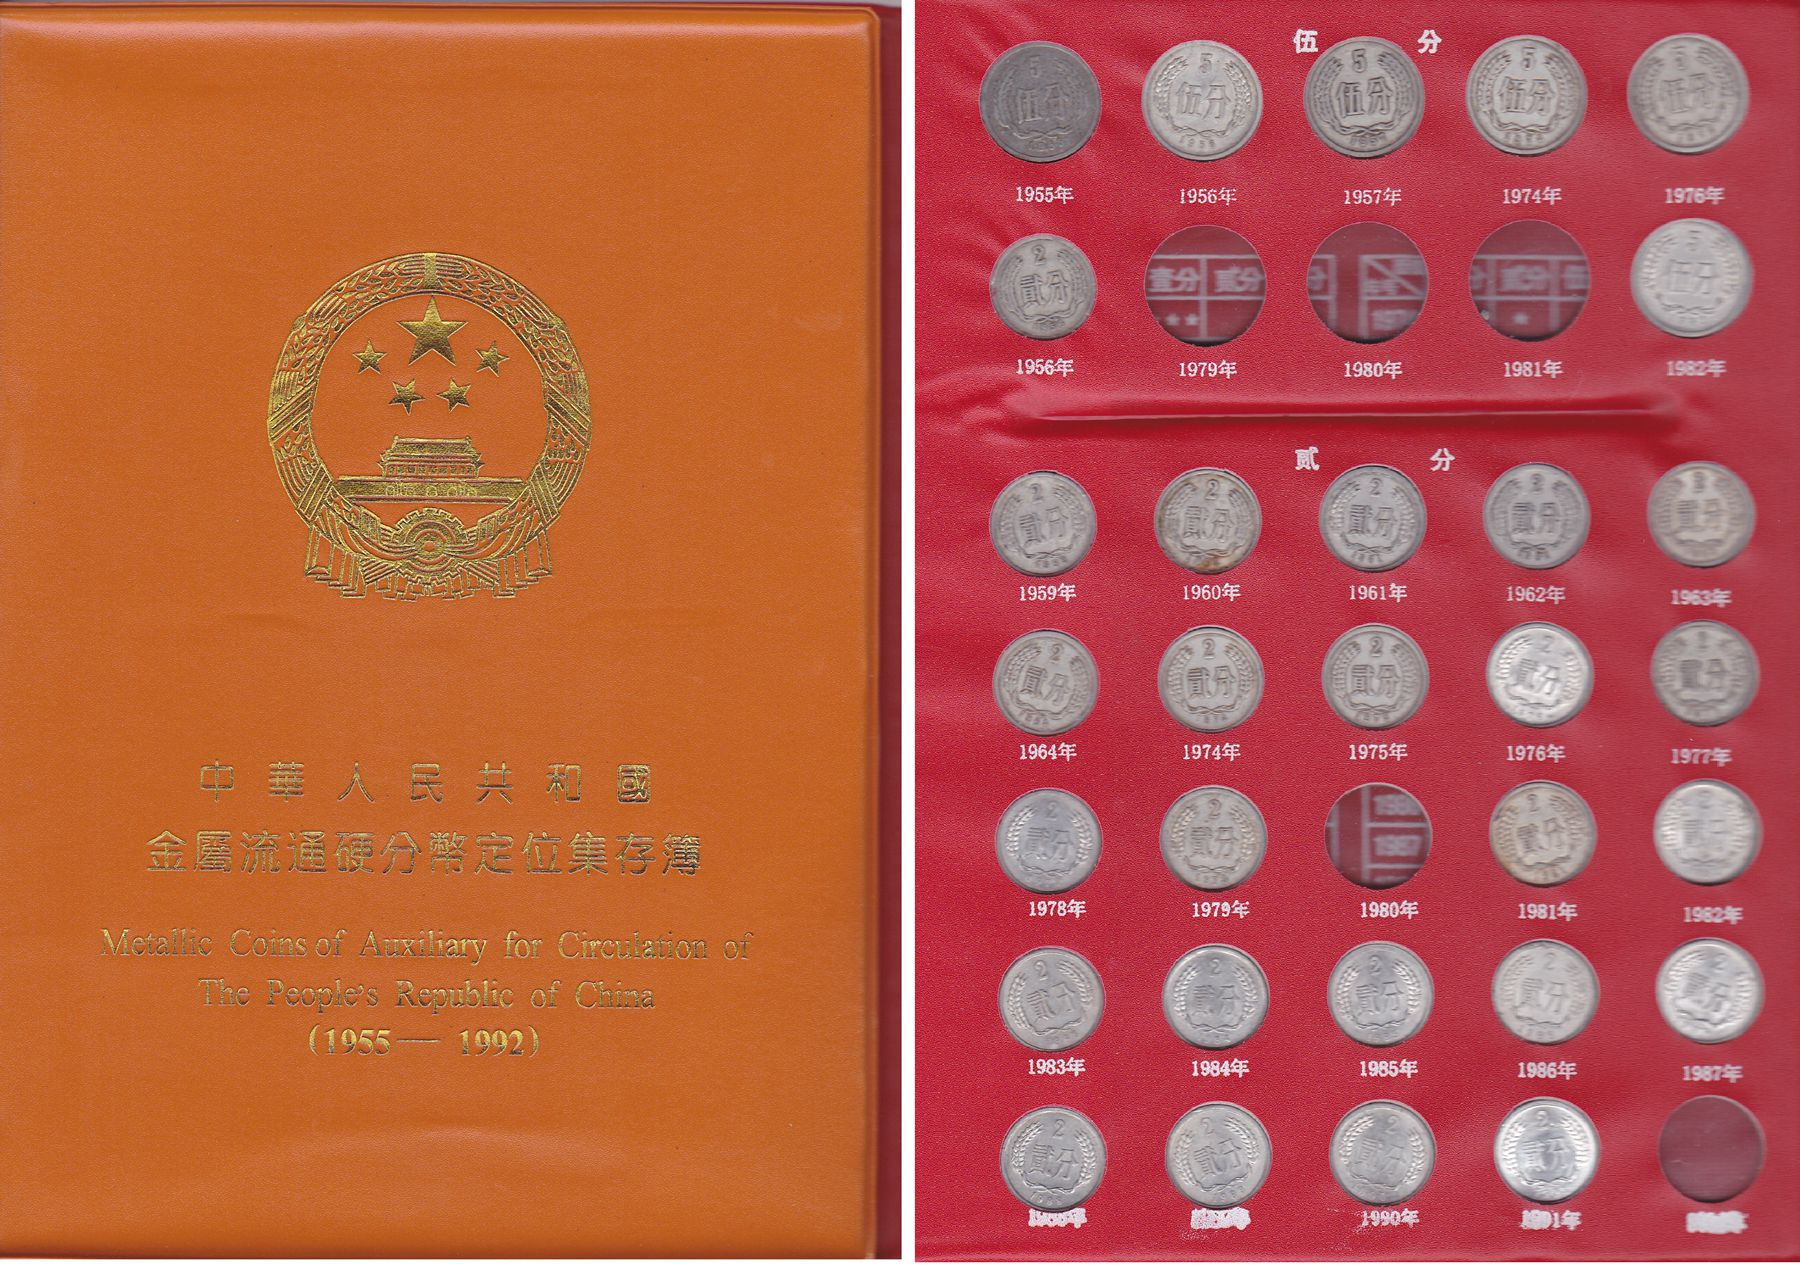 K7300, China Coins 1 Fen 2 Fen and 5 Fen, Metallic Coins of Auxiliary (1955-1992)